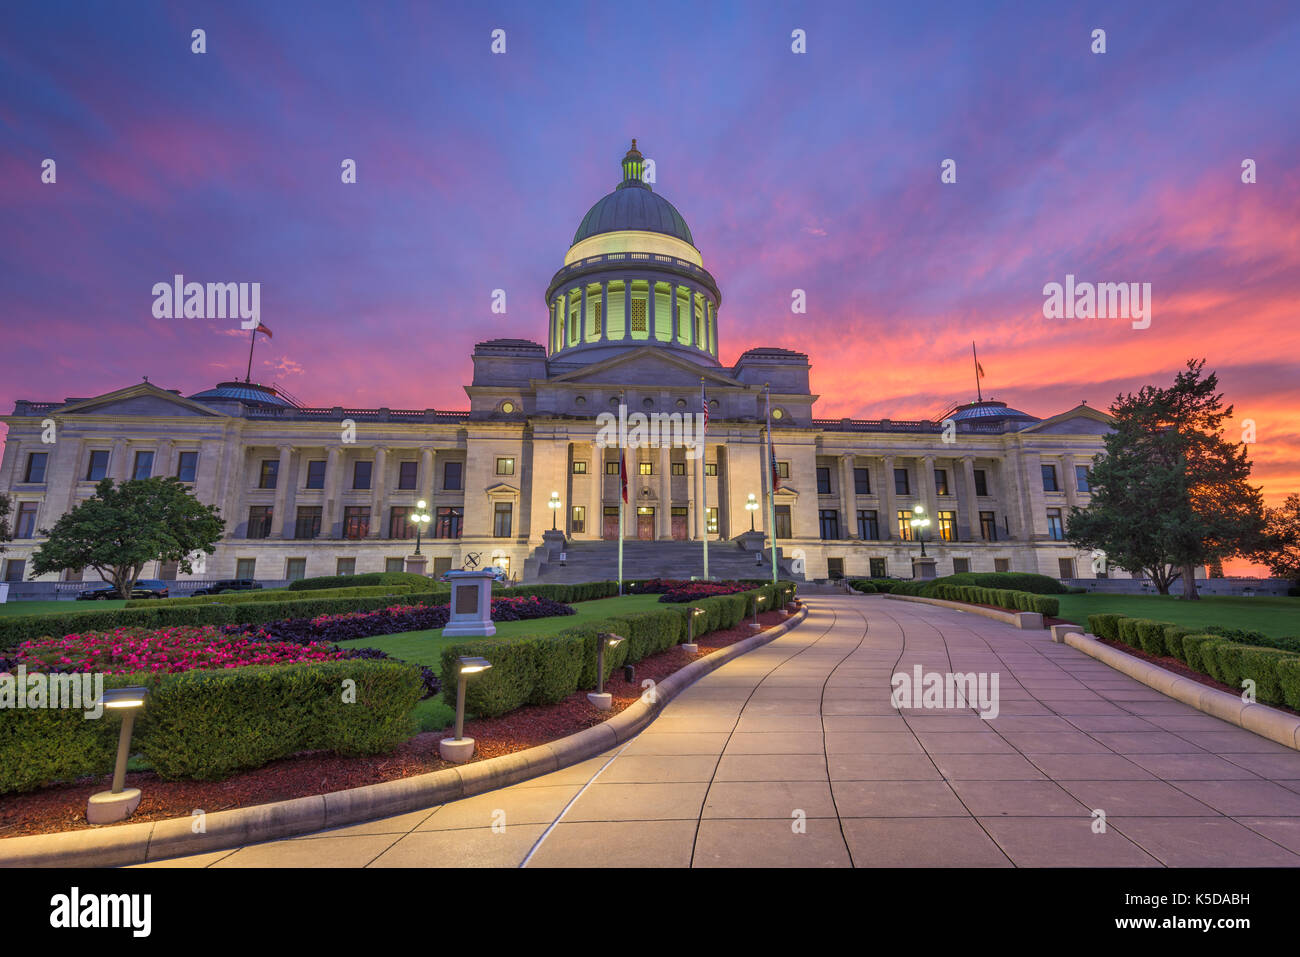 Arkansas state capitol dome stock photos arkansas state capitol little rock arkansas usa at the state capitol stock image malvernweather Gallery